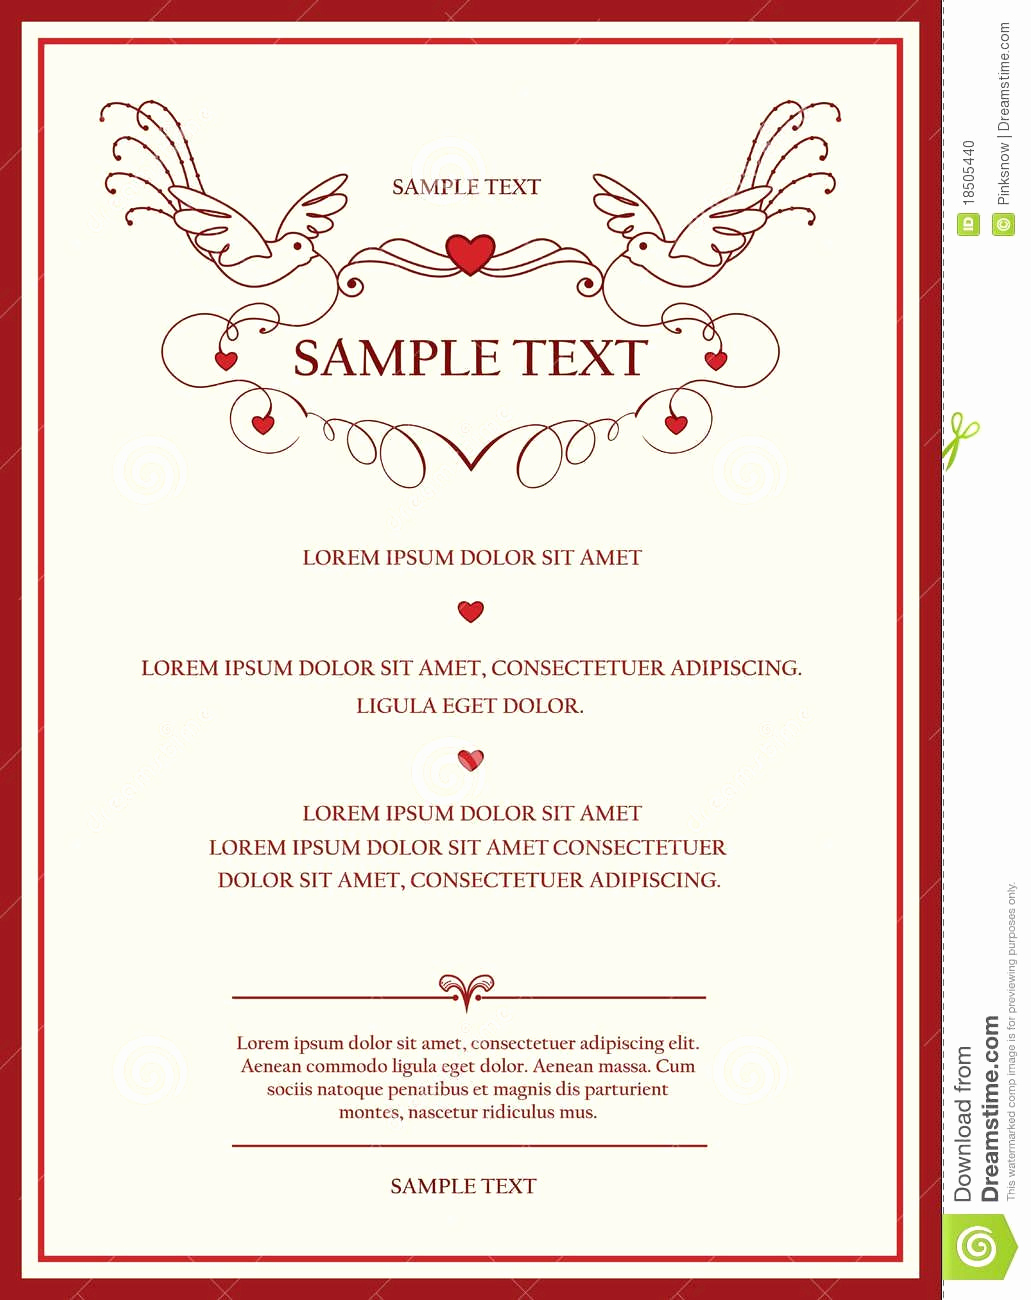 Church Invitation Cards Templates New Church Invitation Cards Templates Awesome Awesome Free